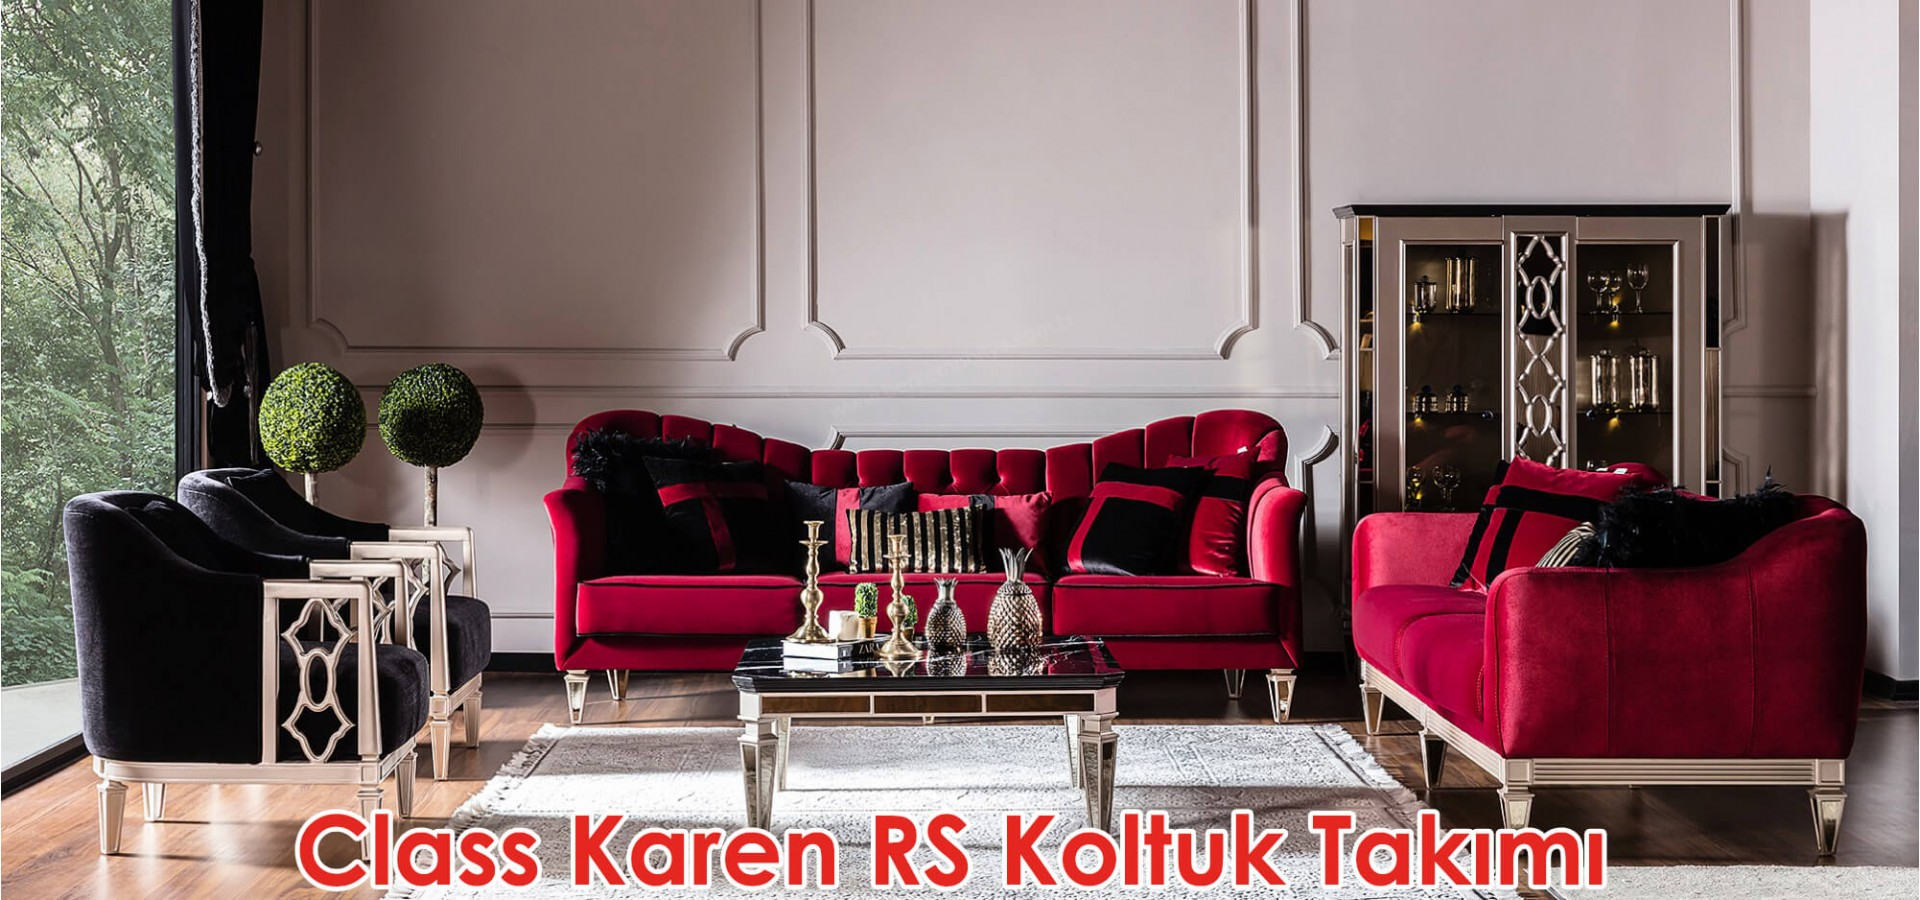 Akaslan Mobilya Home Design Koln Turkisches Mobel